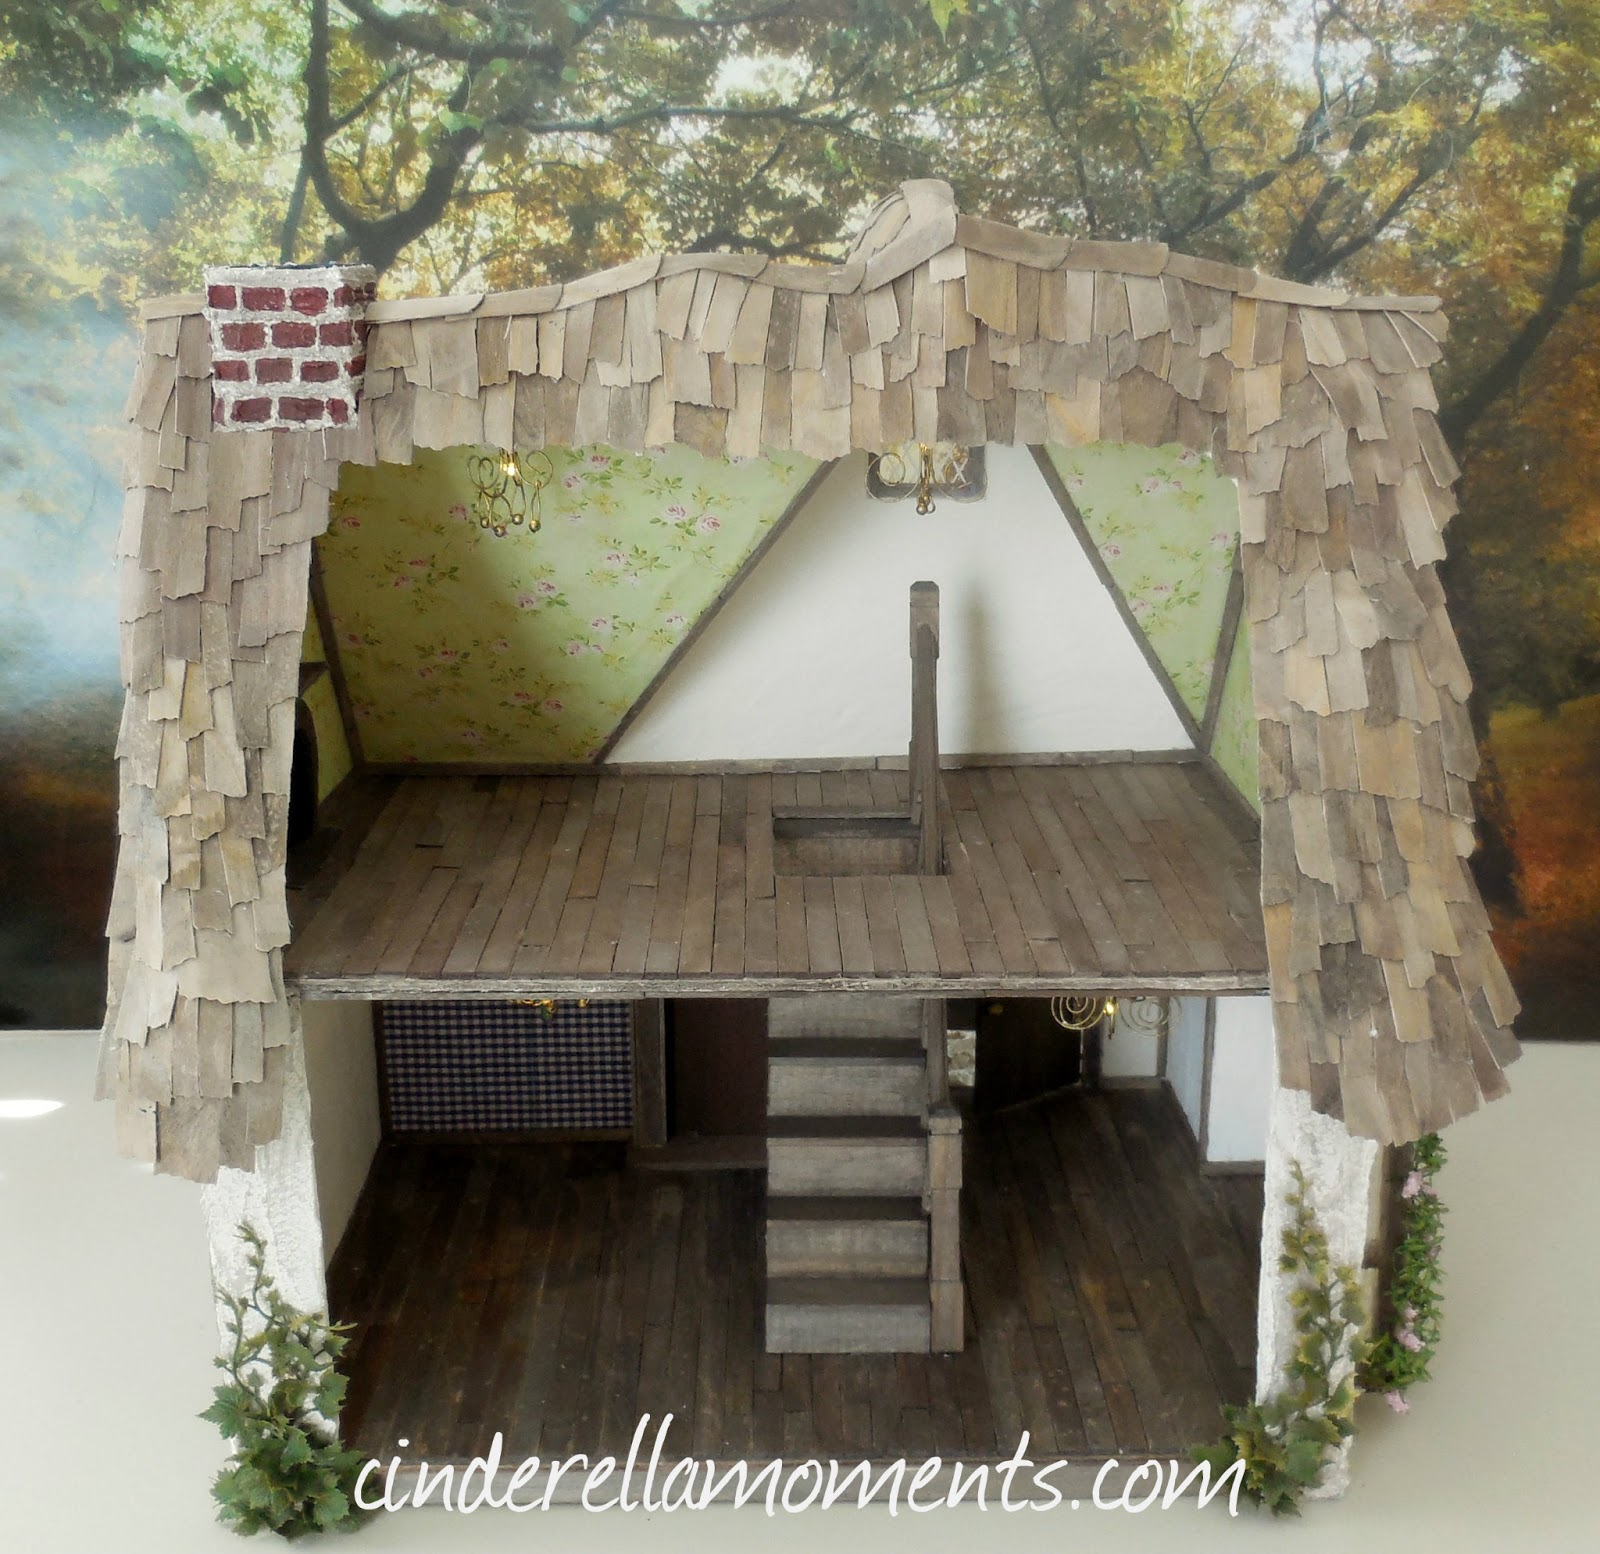 Cinderella Moments: The Old Cottage Dollhouse